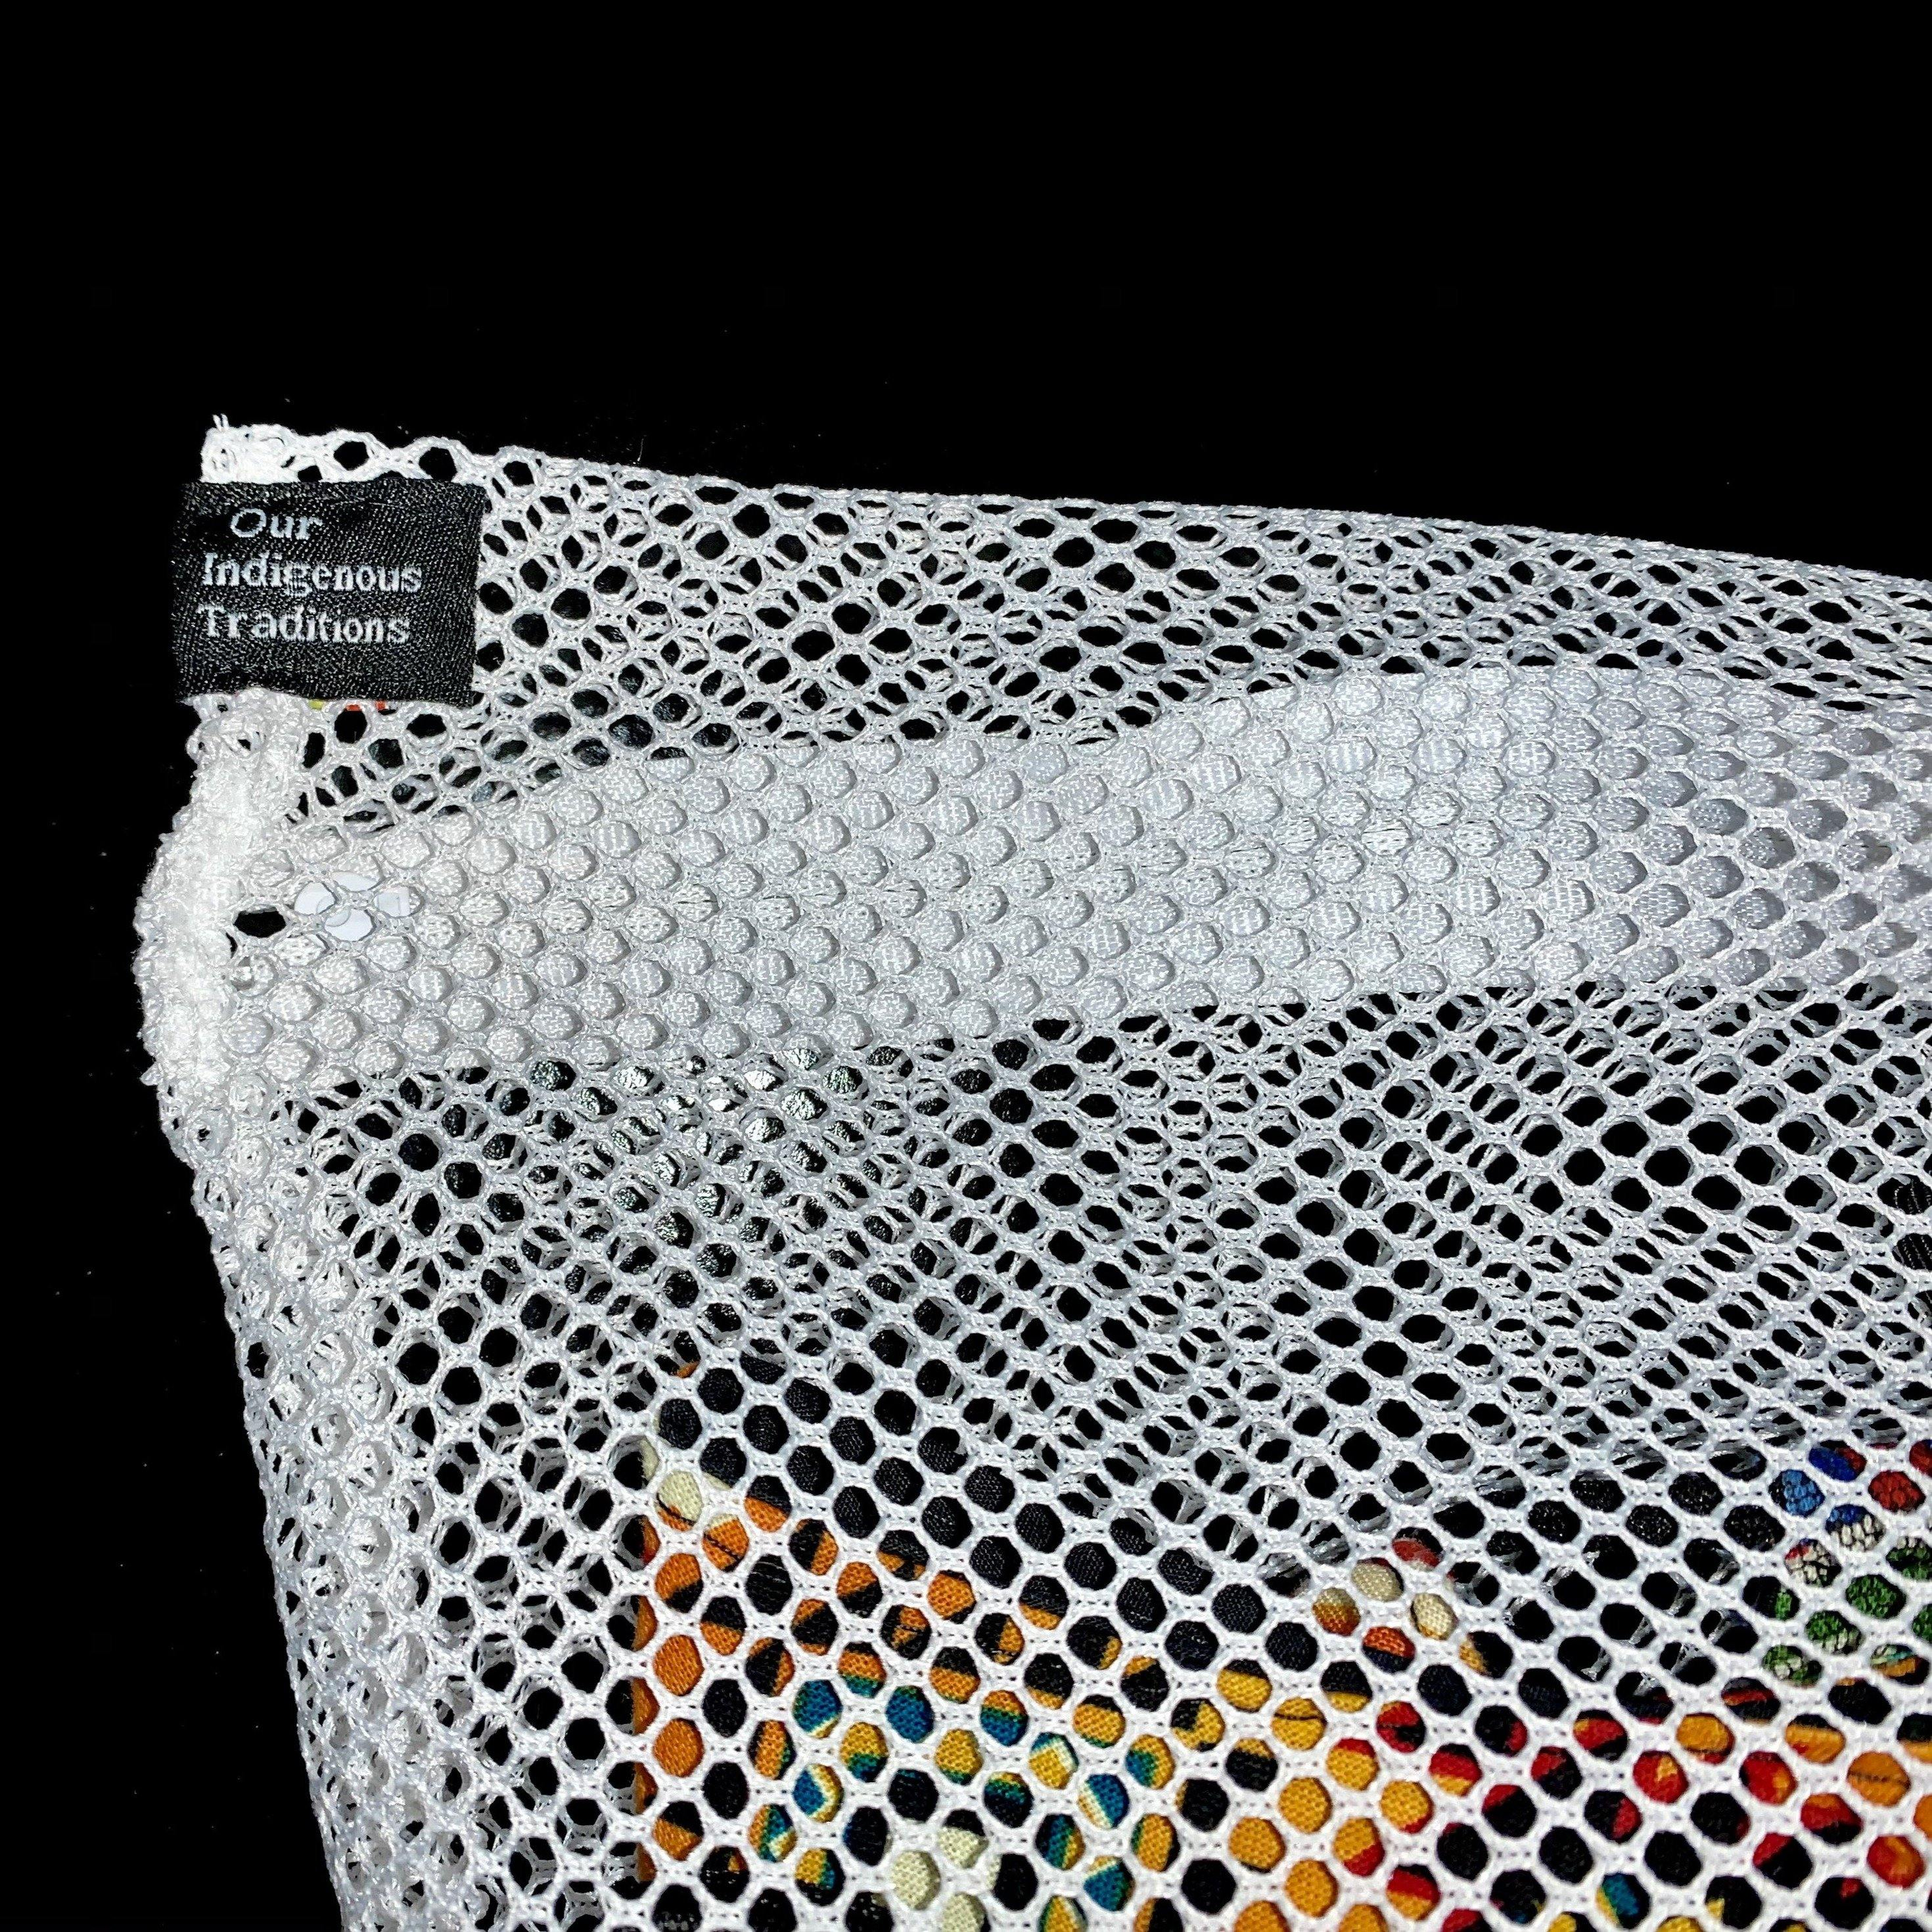 Mesh Laundry Bag bag accessories, accessory, bag, business, clothing, clothing line, fit, home, lightweight, logo, native american, New Arrival, oitclothing, outwear, polyester, popular - Our